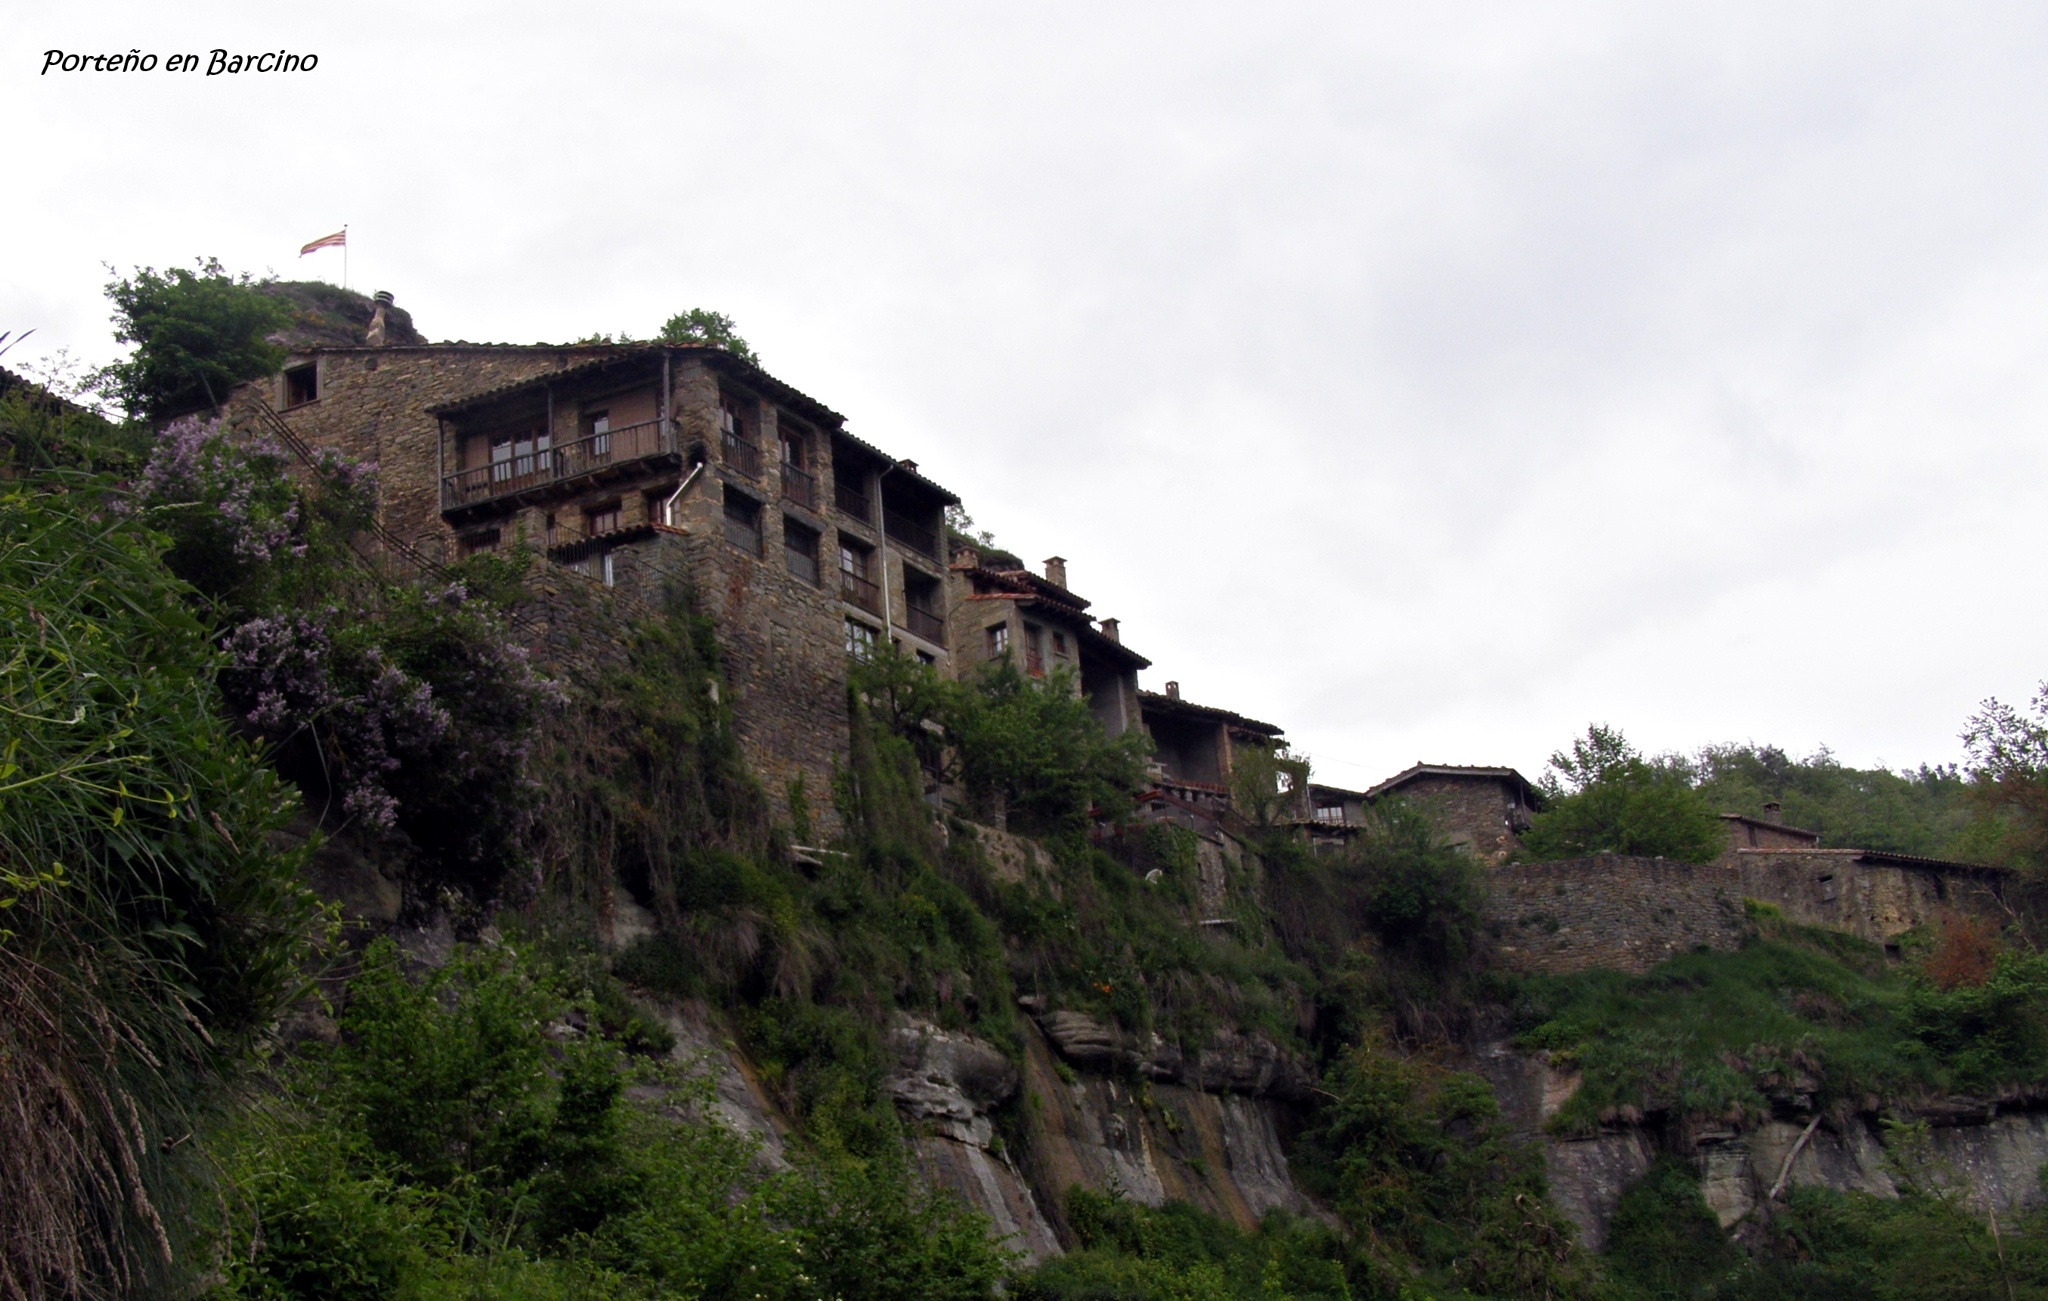 Rupit by PortenyoBarcino